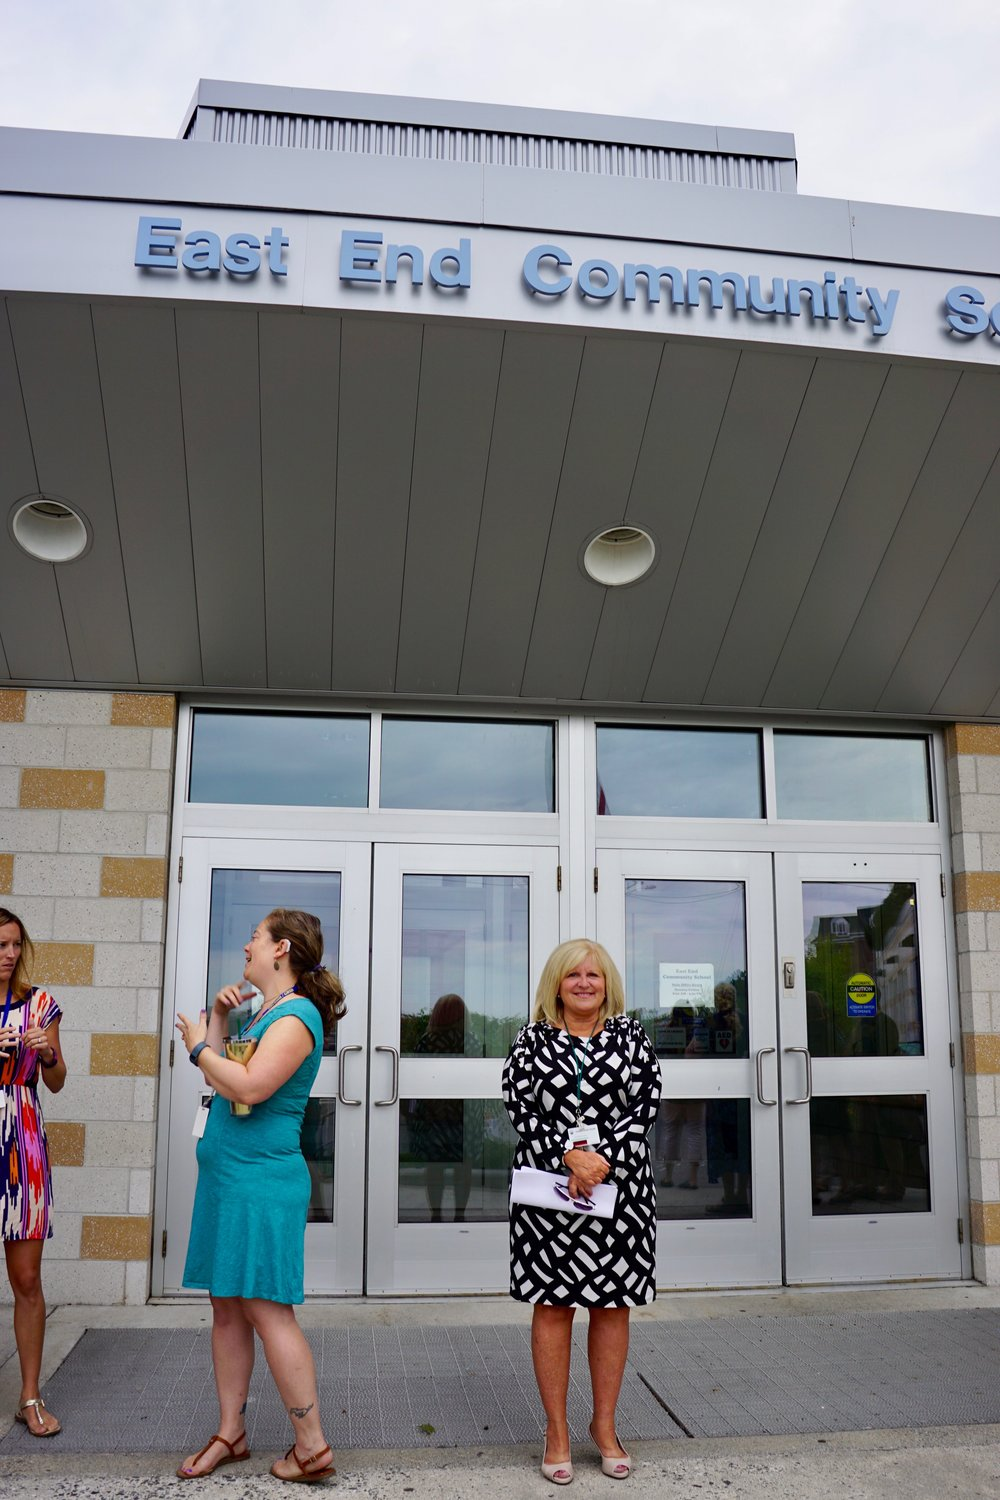 Principal Marcia Gendron greets students and parents at the entrance to the East End Community School Wednesday.